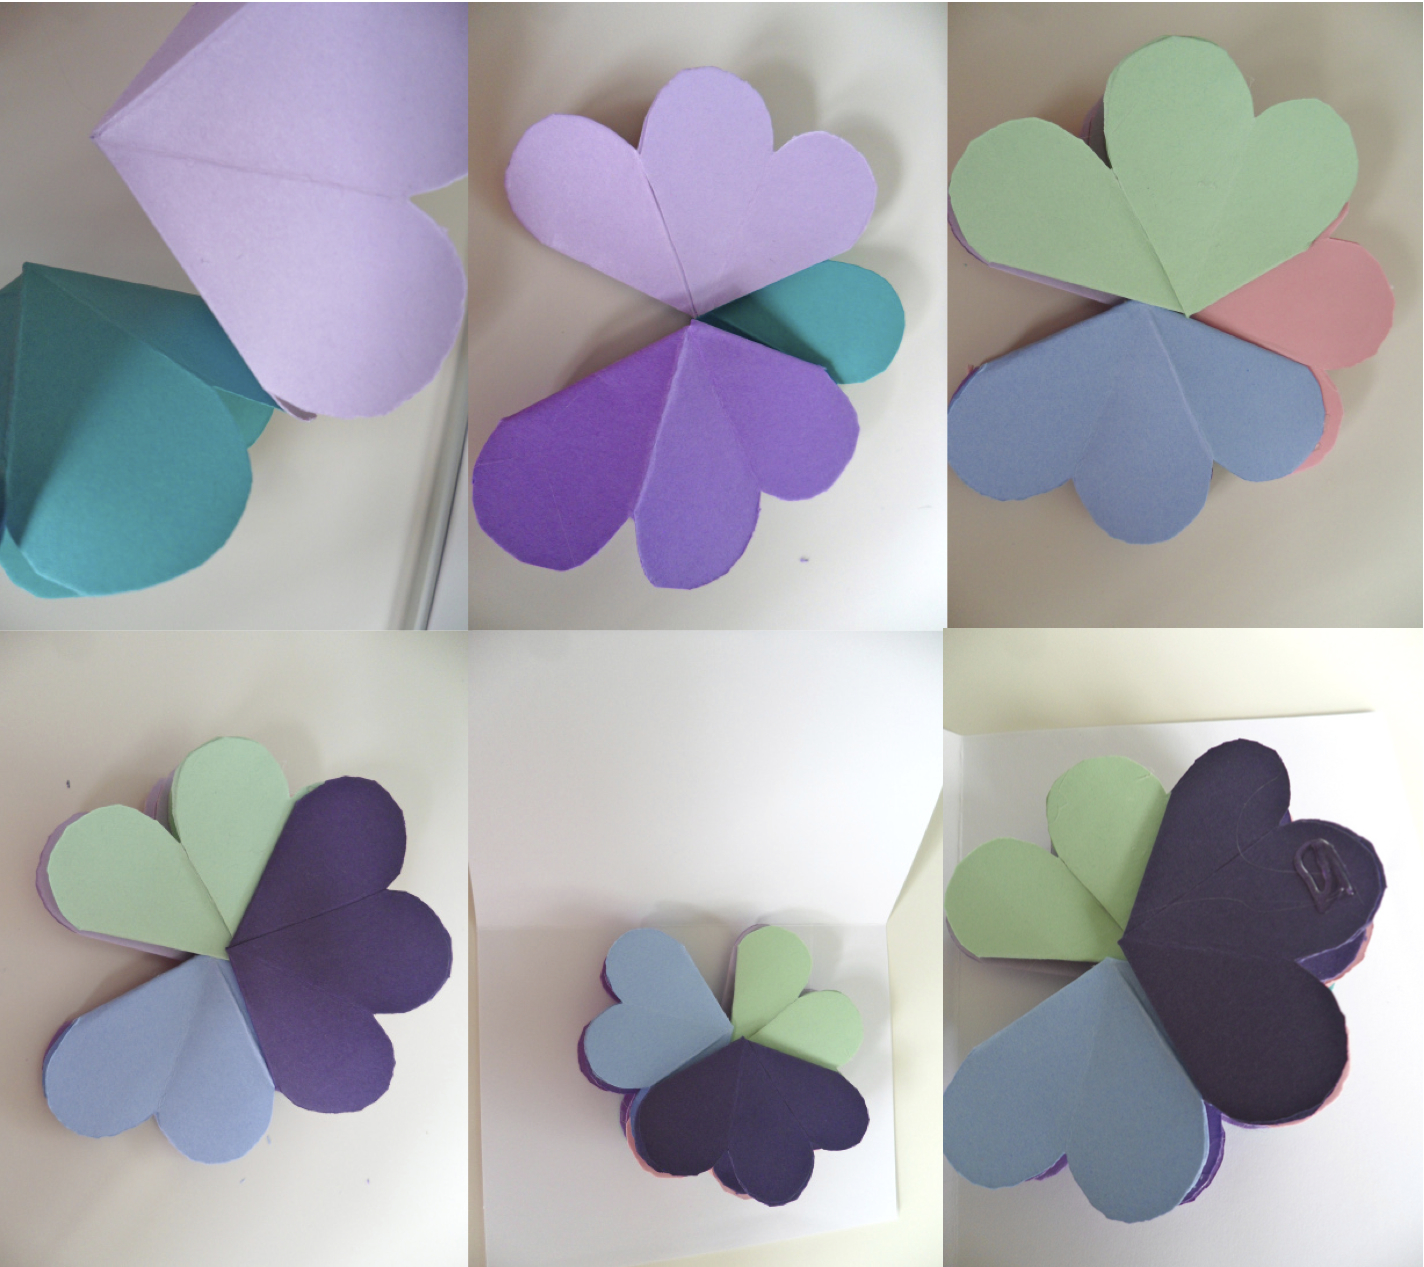 Origami flower pop up card choice image flower decoration ideas origami flower pop up card images flower decoration ideas origami flower pop up card choice image mightylinksfo